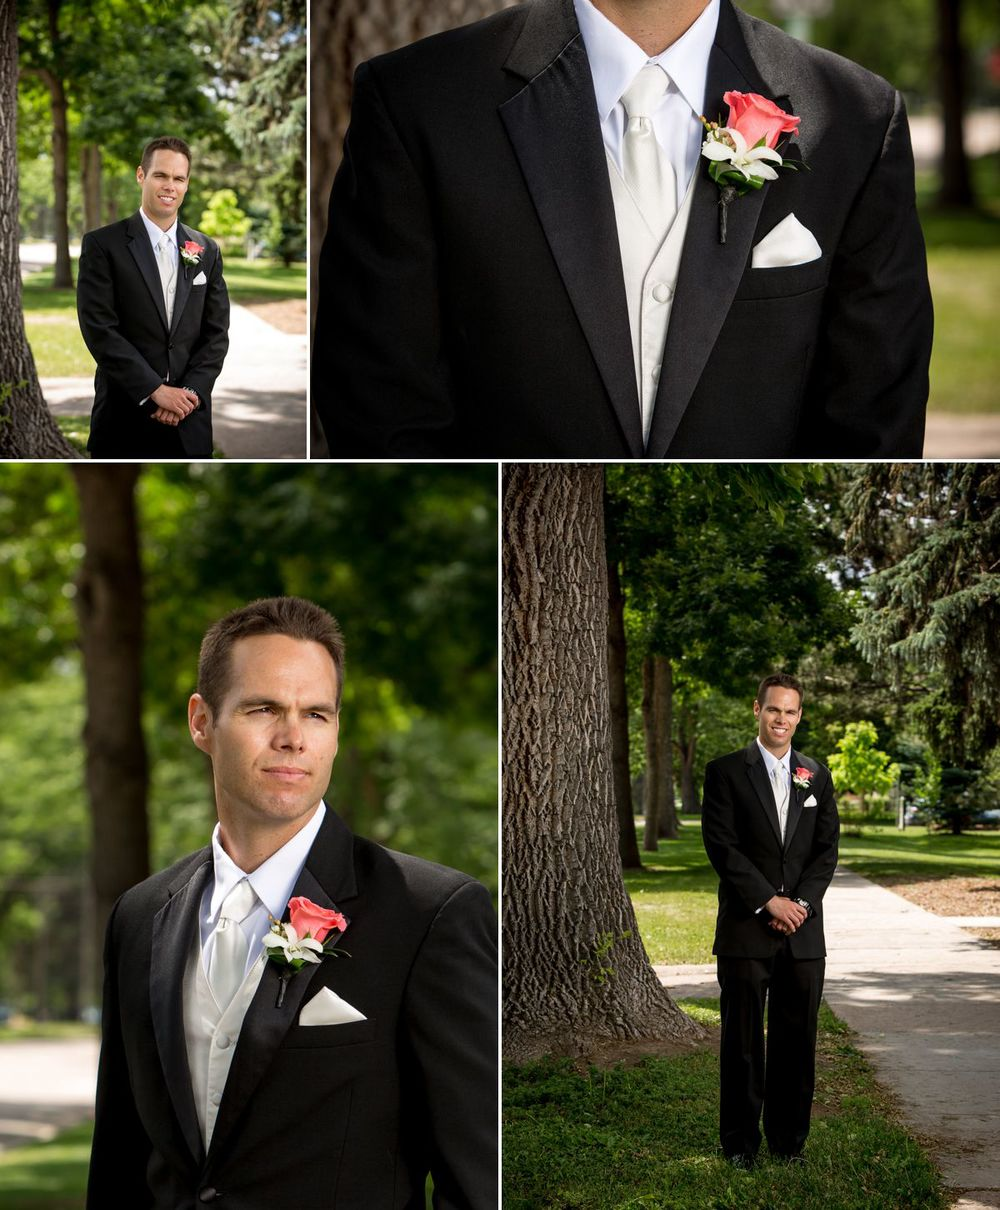 Handsome groom!